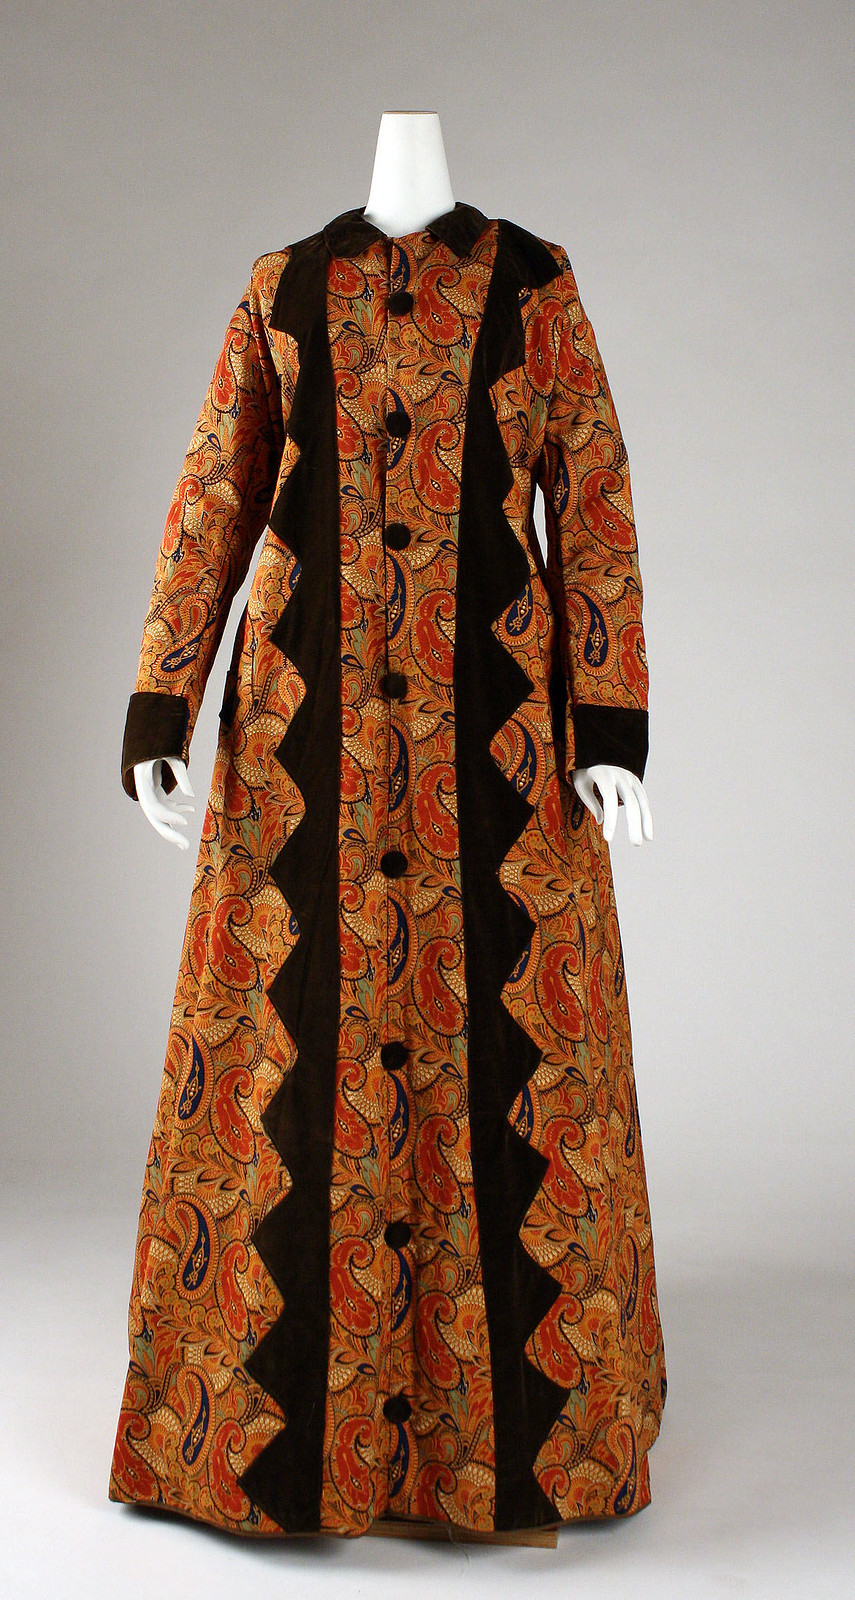 Dressing gown 1870s American Linen, cotton, metmuseum